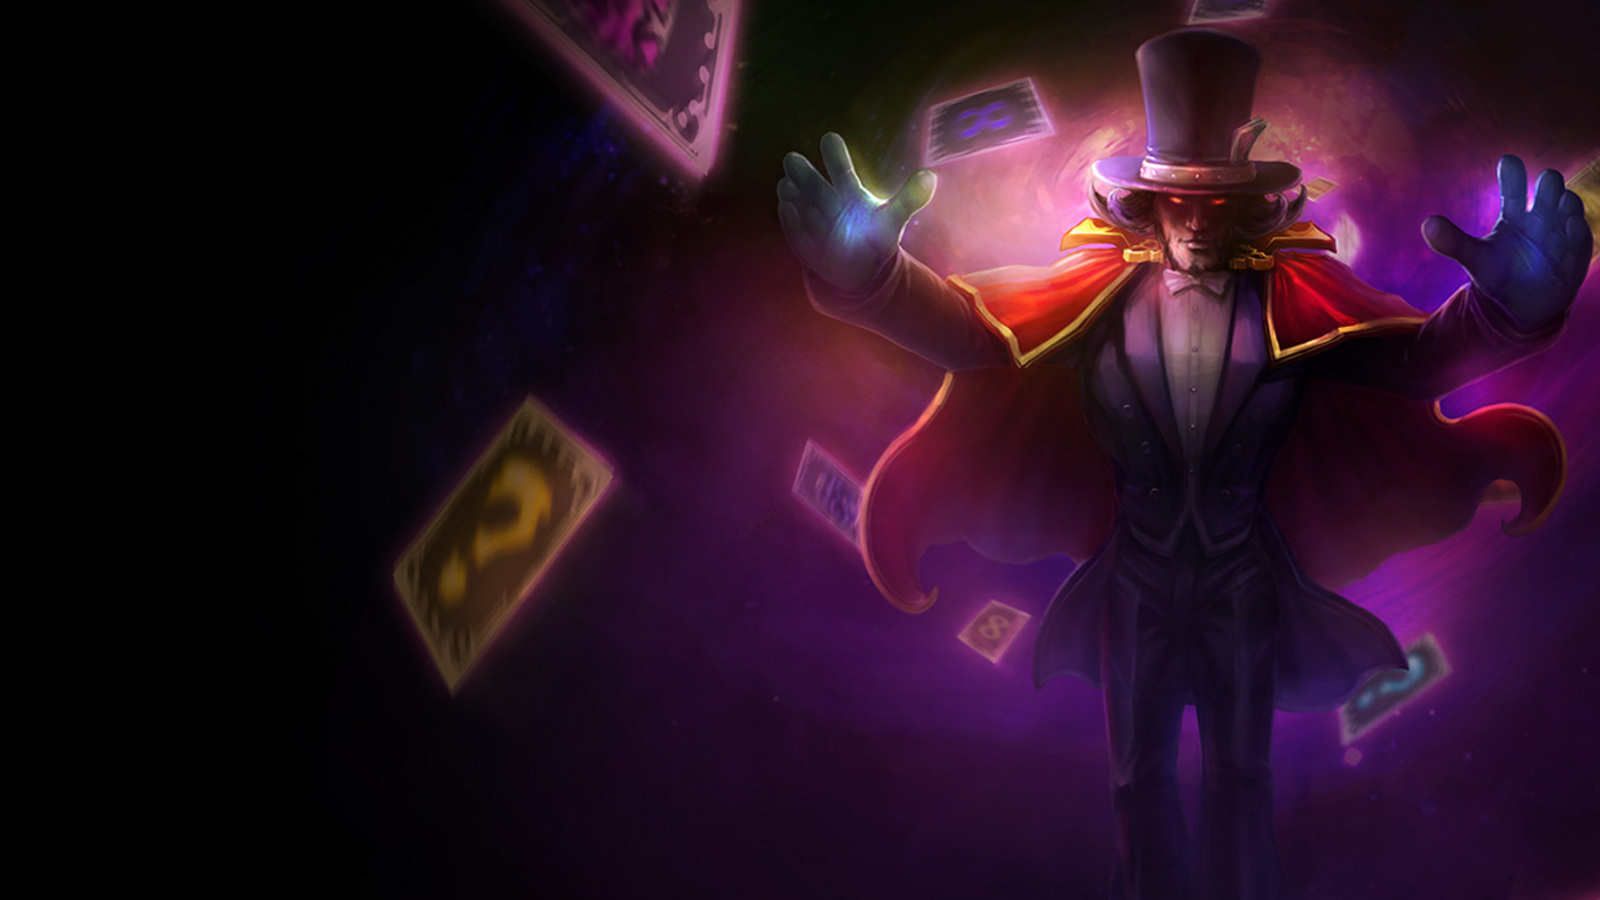 Twisted fate magnificent wp HD Wallpaper